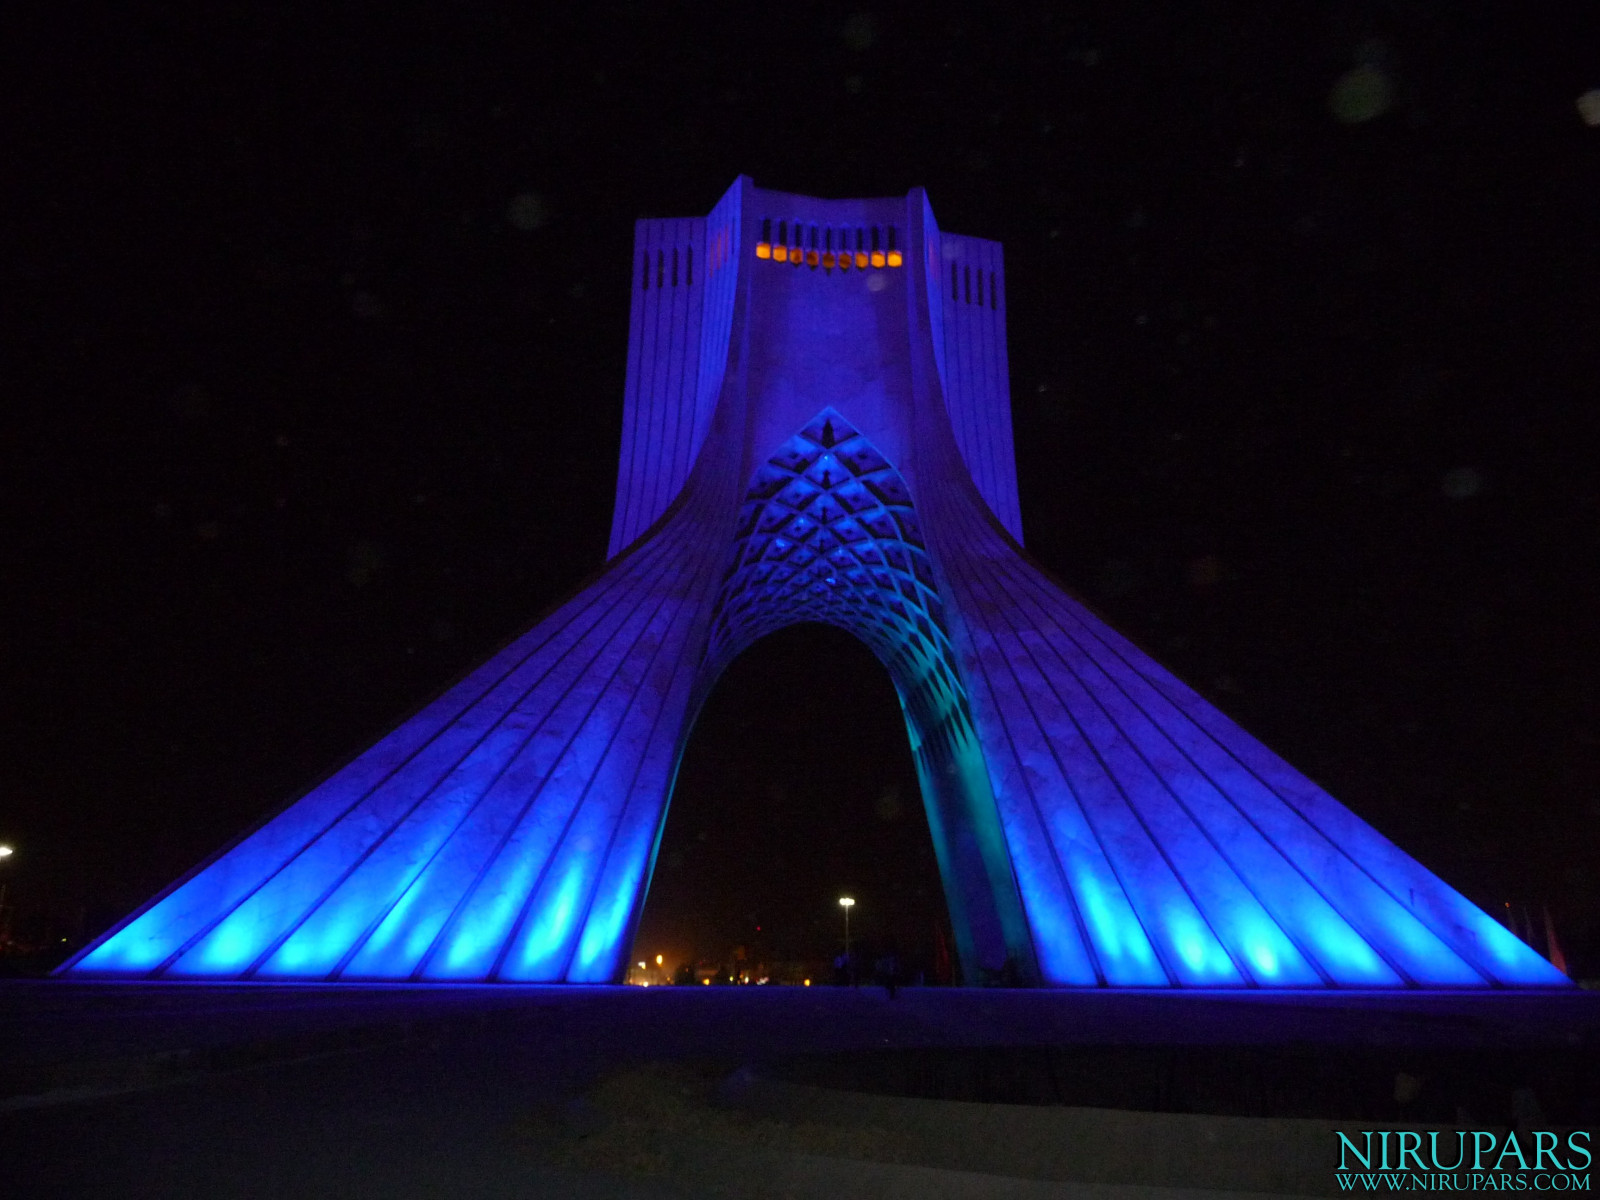 Meydan-e Azadi - Night Blue